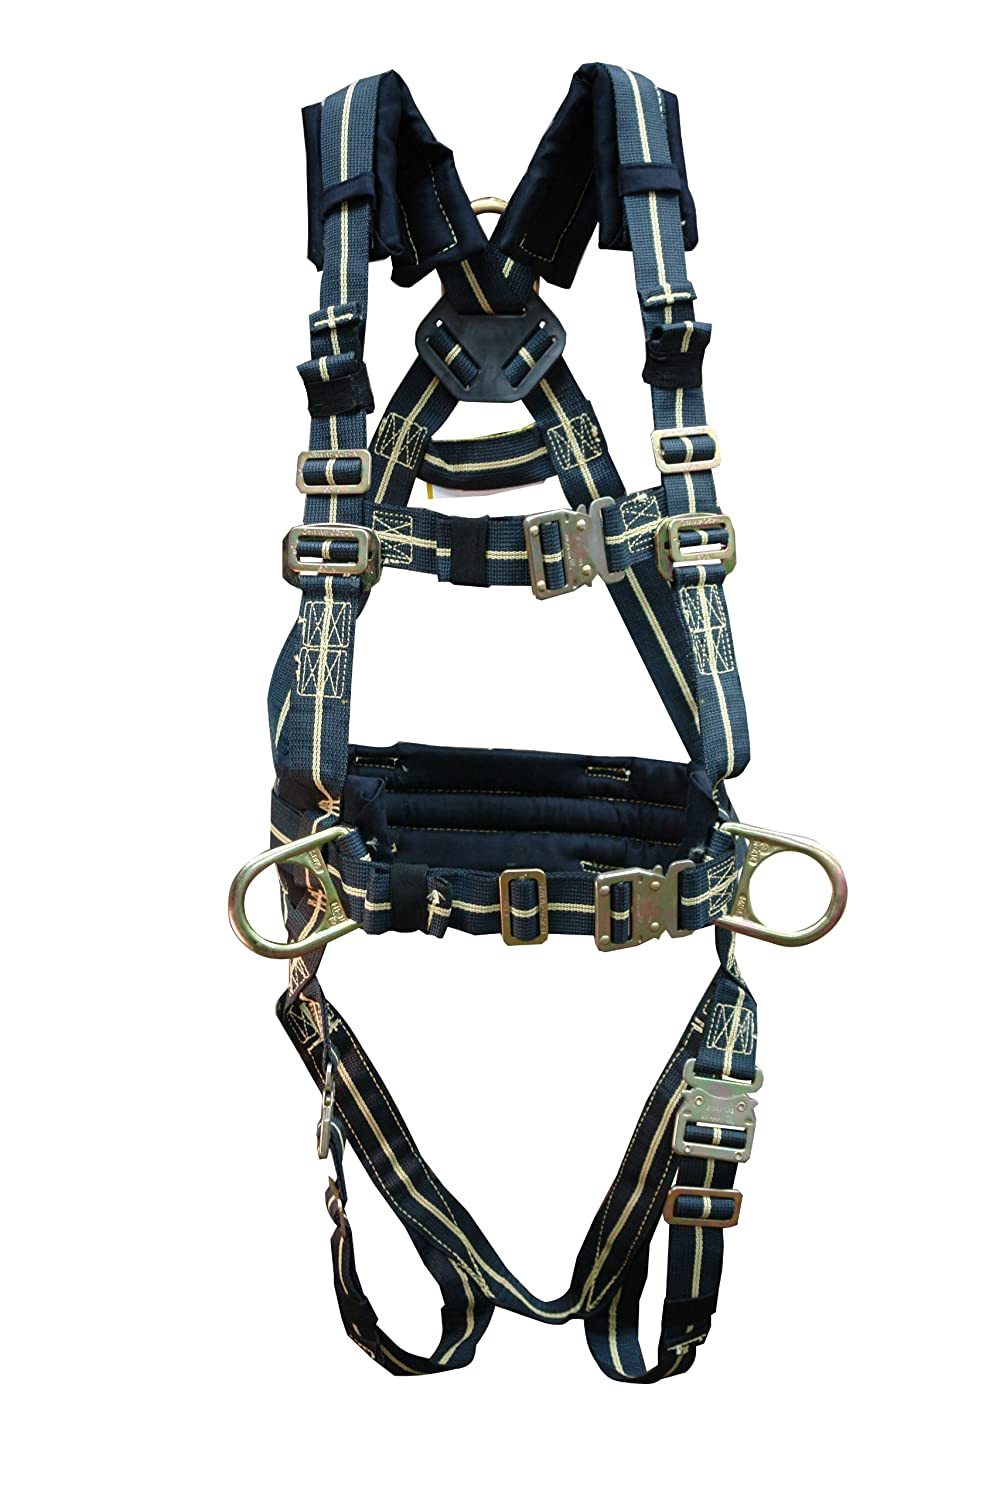 Elk River 95324 FireMaster Kevlar 3 D-Ring Harness with Quick Connect Buckles and Fall Indicator, X-Large